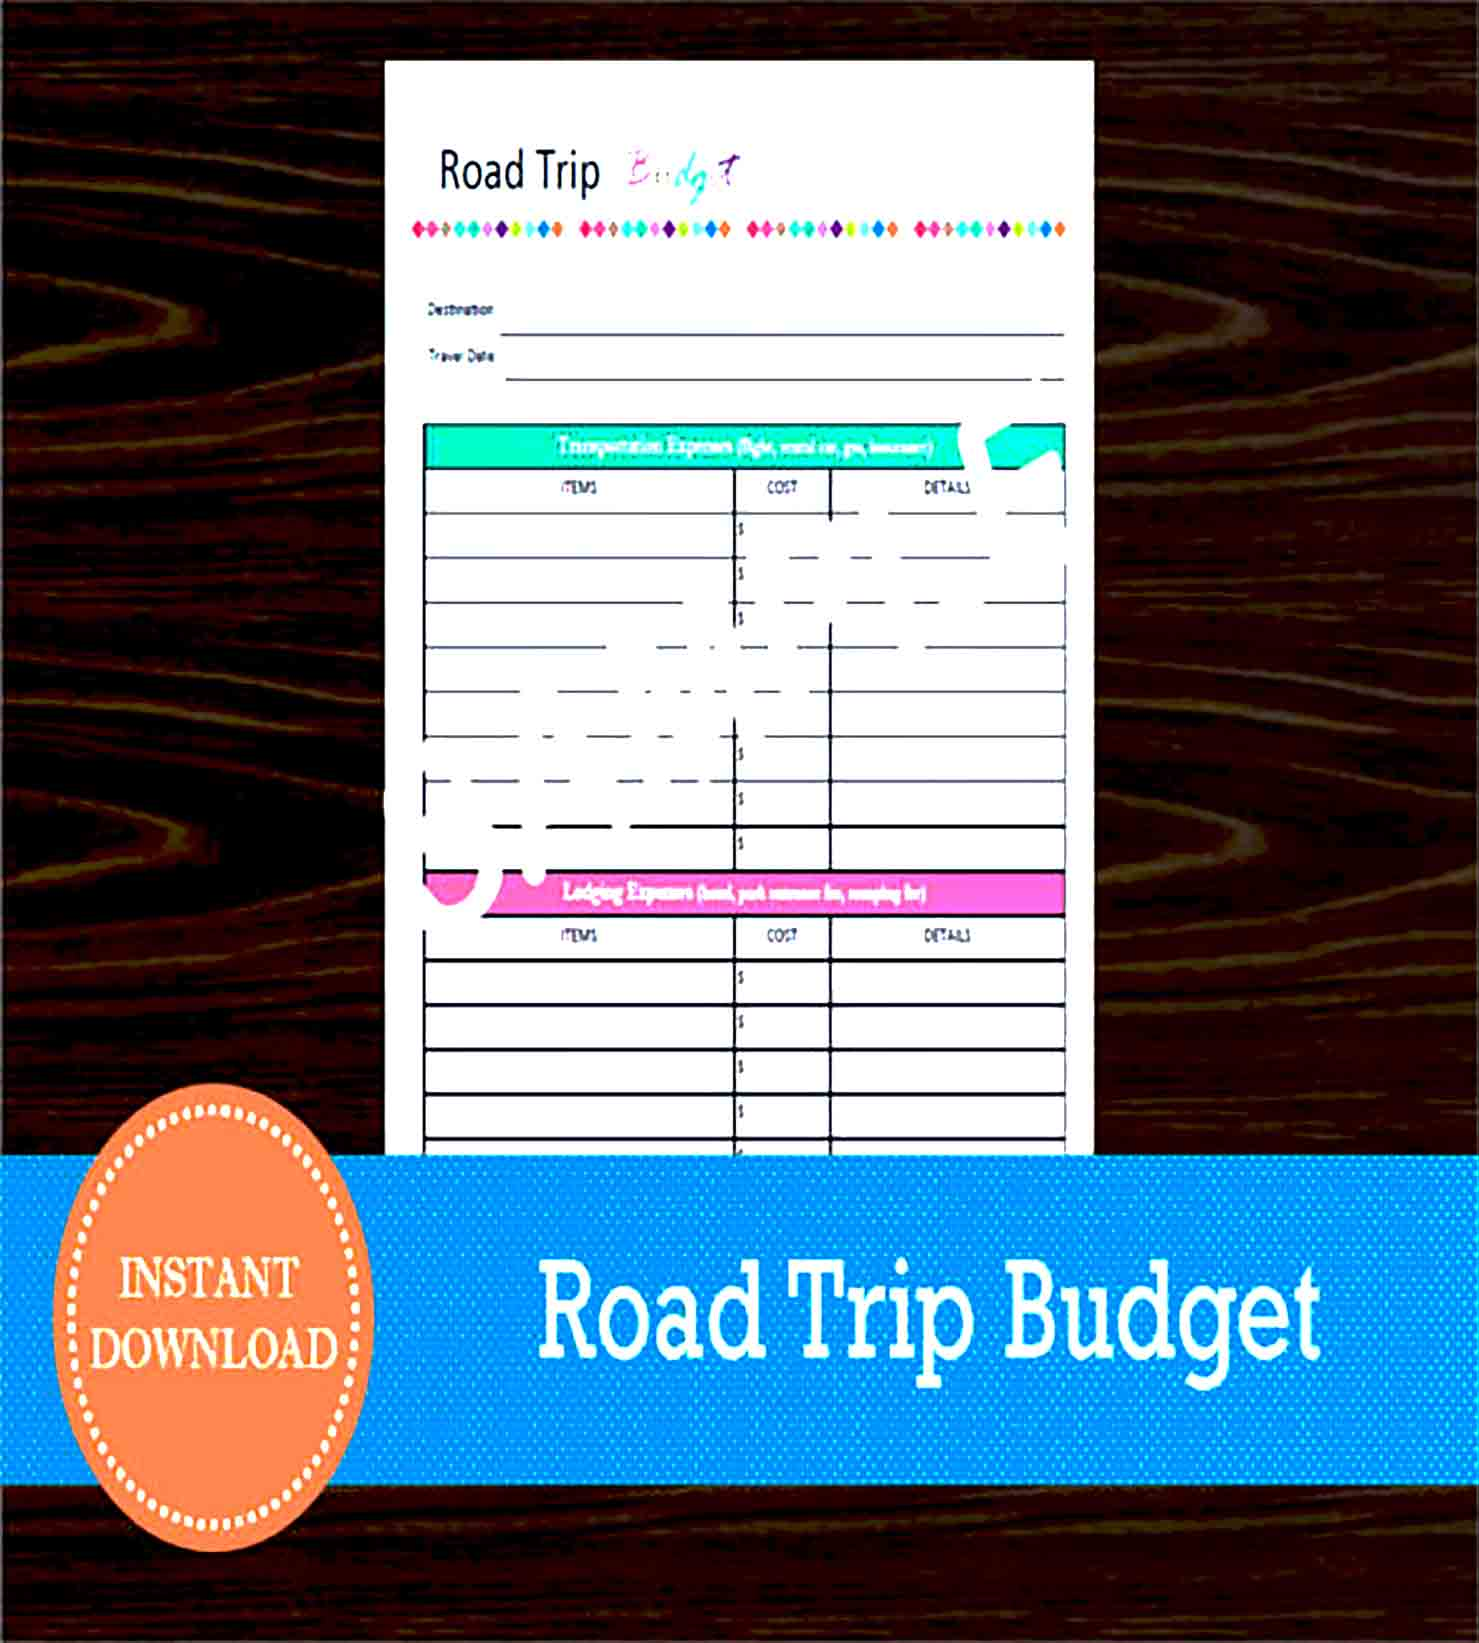 Sample Road Trip Budget Sheet